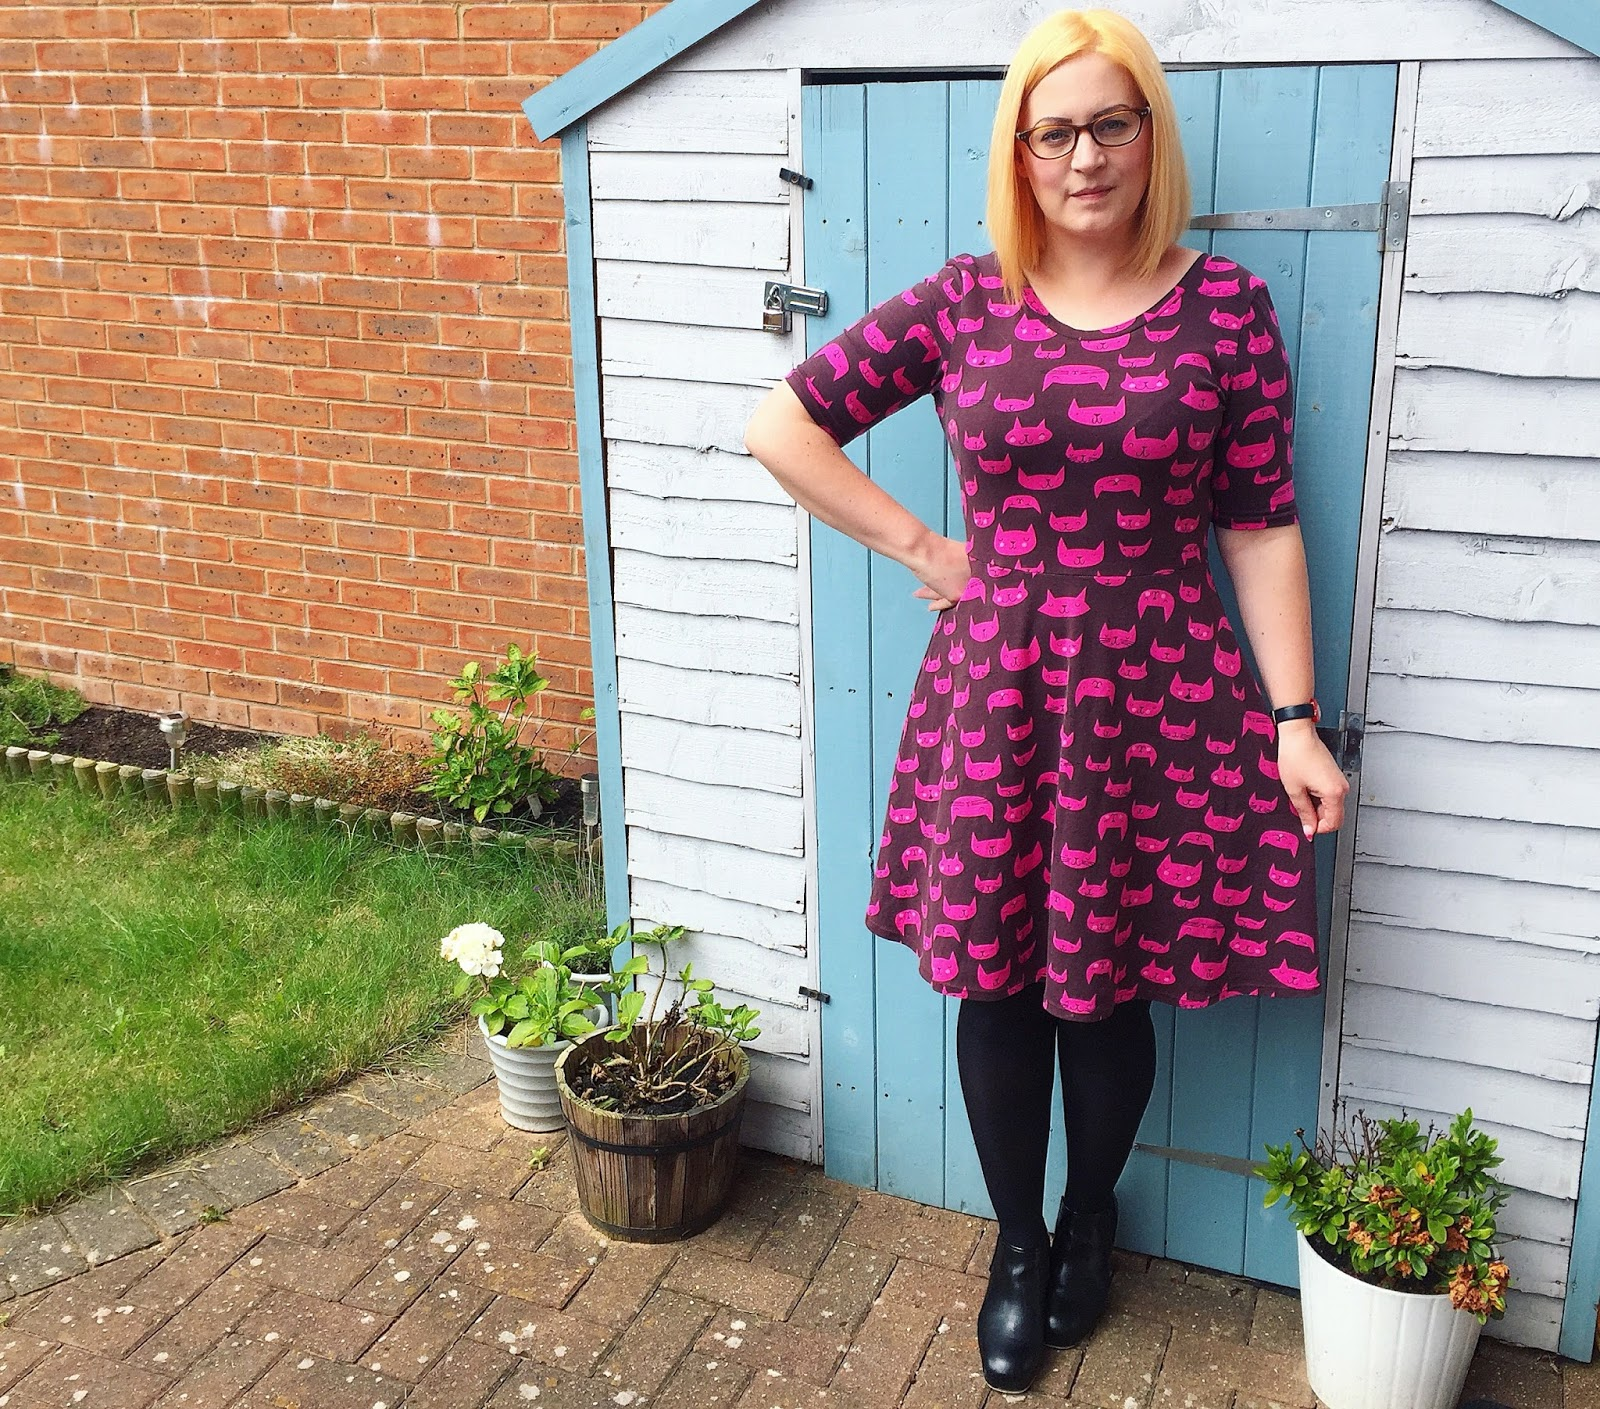 0e24ceaa79 Dress  Made by me using Lizzy House Cattitude cat fabric from Modes4U   Pattern  Lady Skater Dress by Kitschy Coo Shoes  Orla Kiely x Clarks